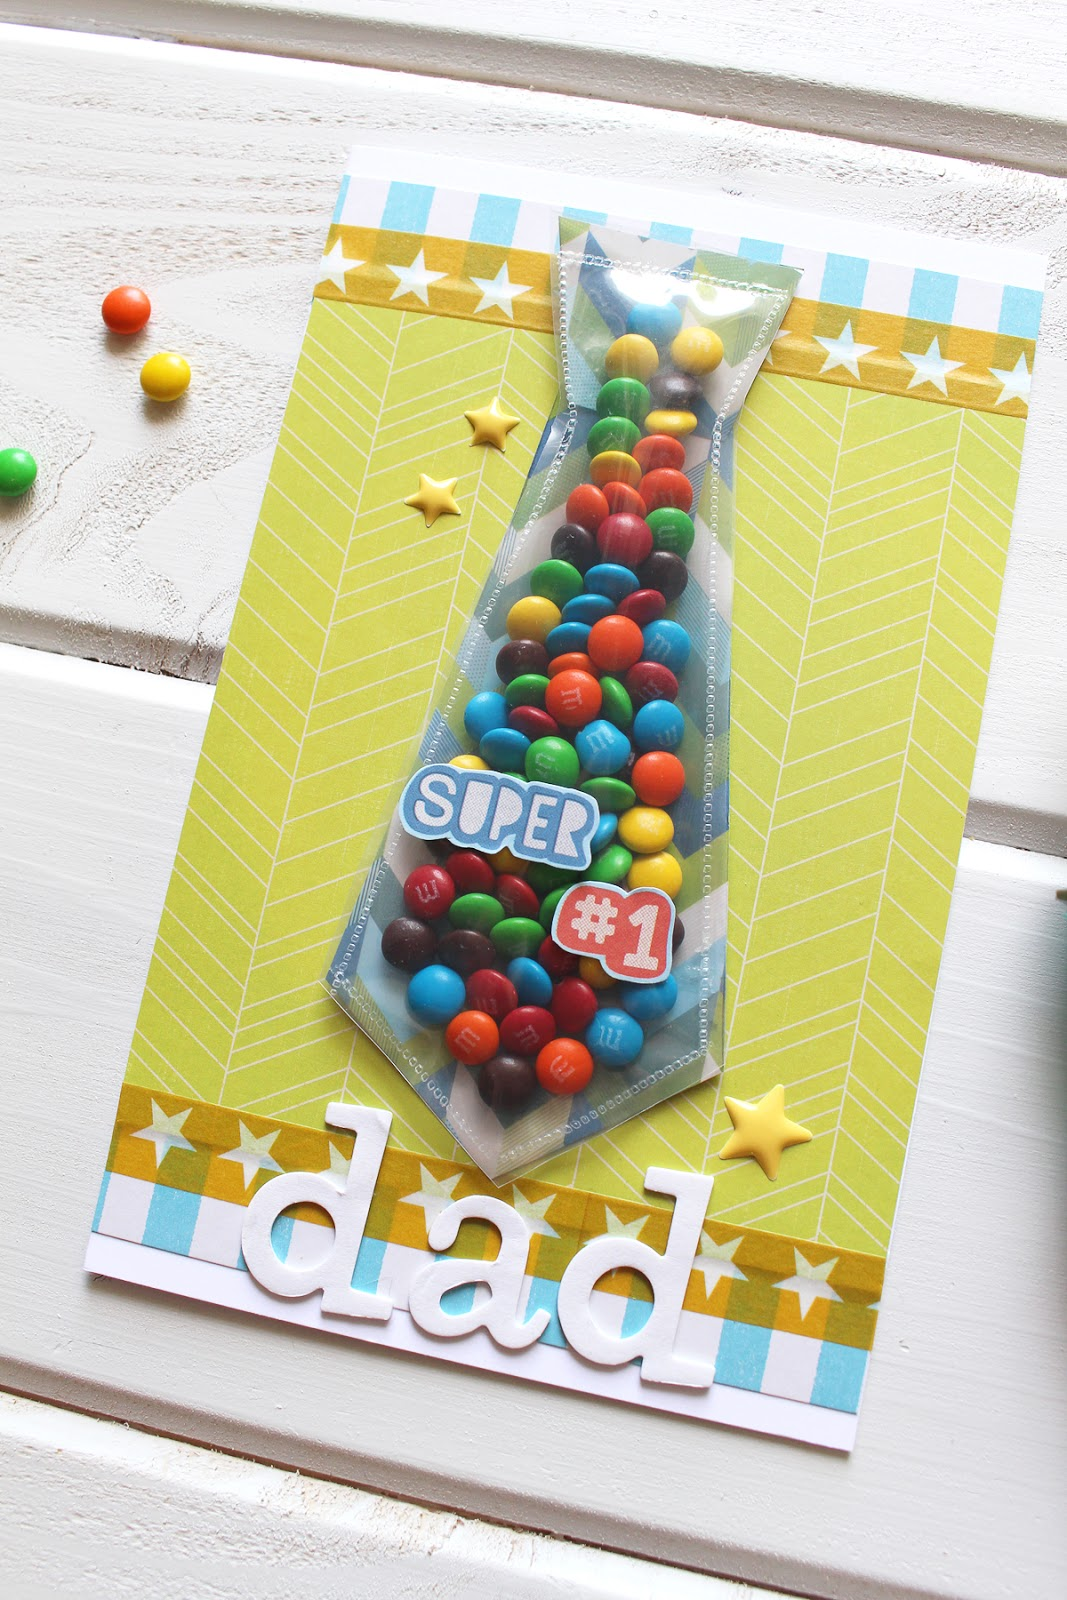 For The Love Of Paper Fathers Day Card Tie Candy Holder With Chocolate Box Fuse Dads And Also In Our Case Grandpas Its A Great Combination Makes Super Fun